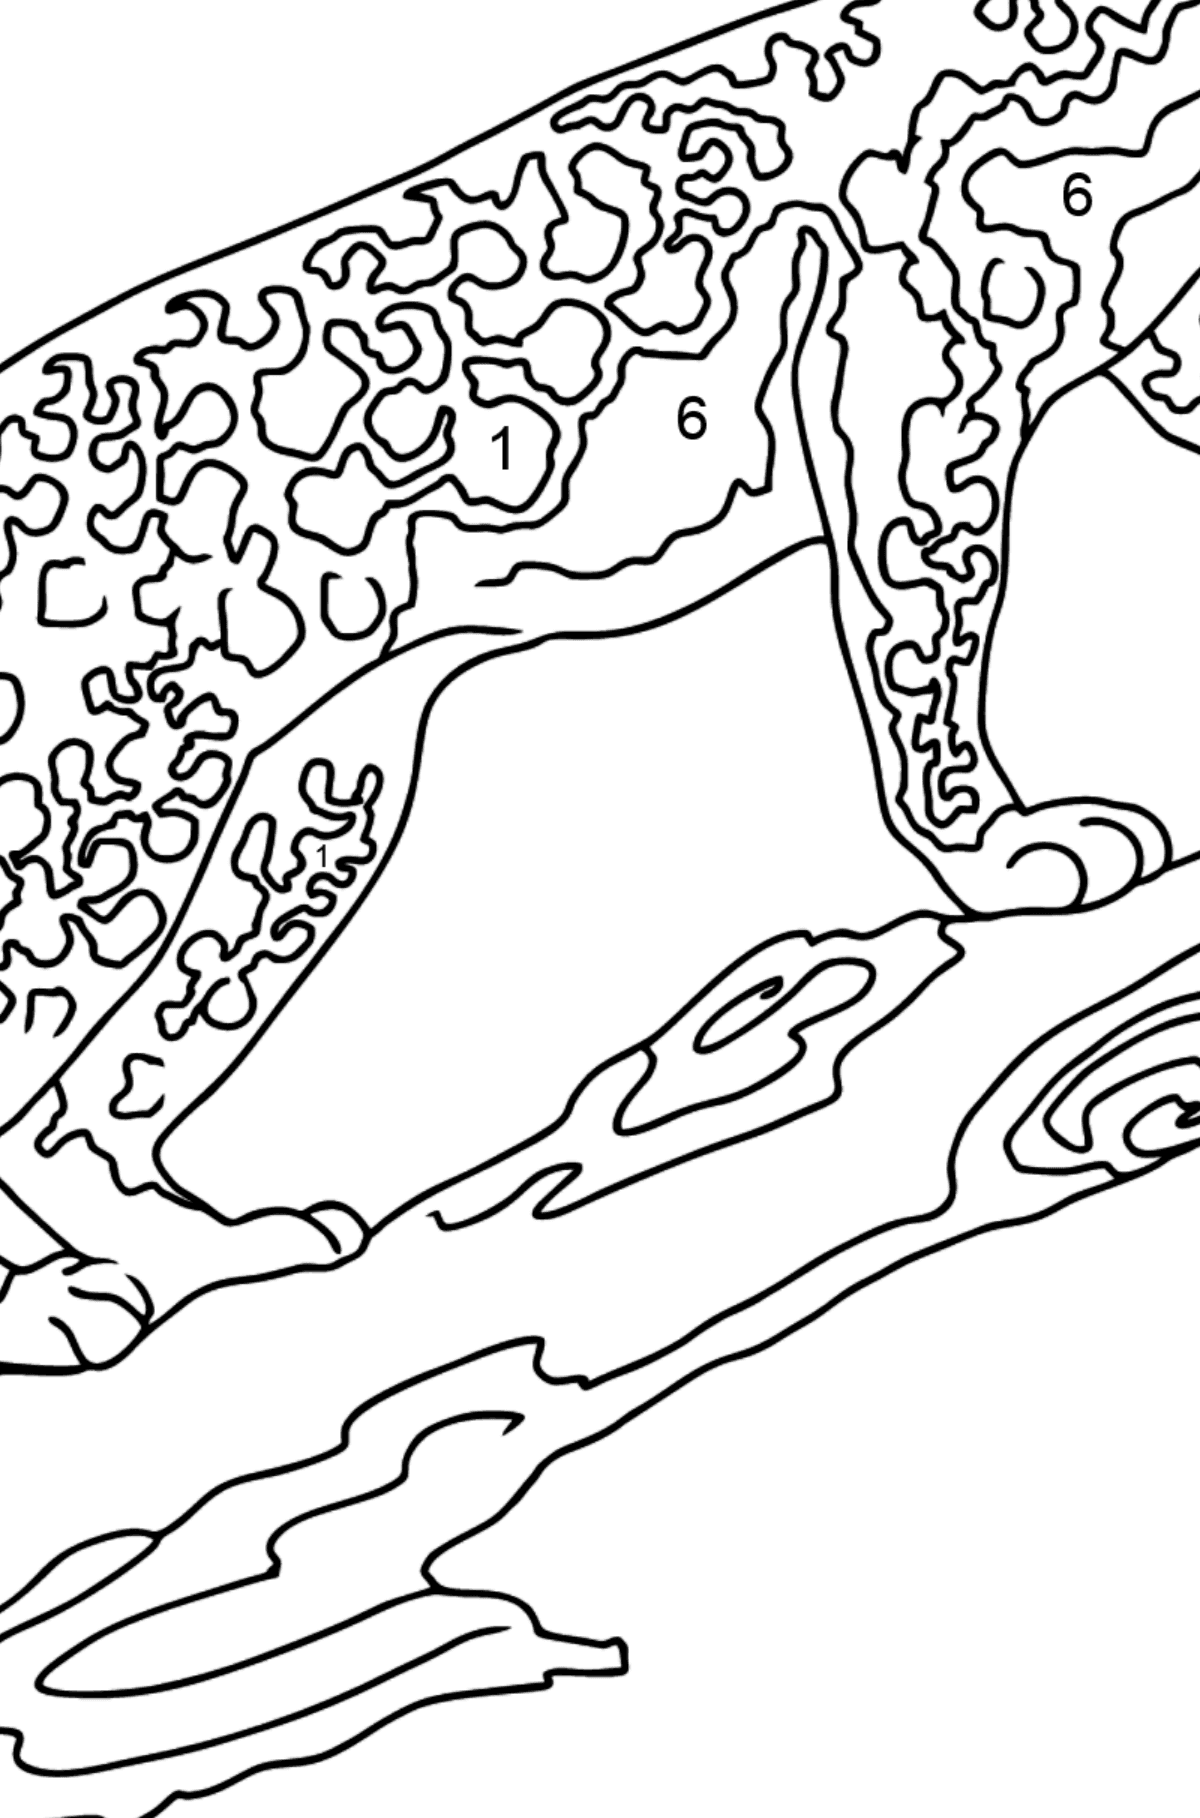 Coloring Page - A Leopard is Getting Ready for a Jump - Coloring by Numbers for Kids